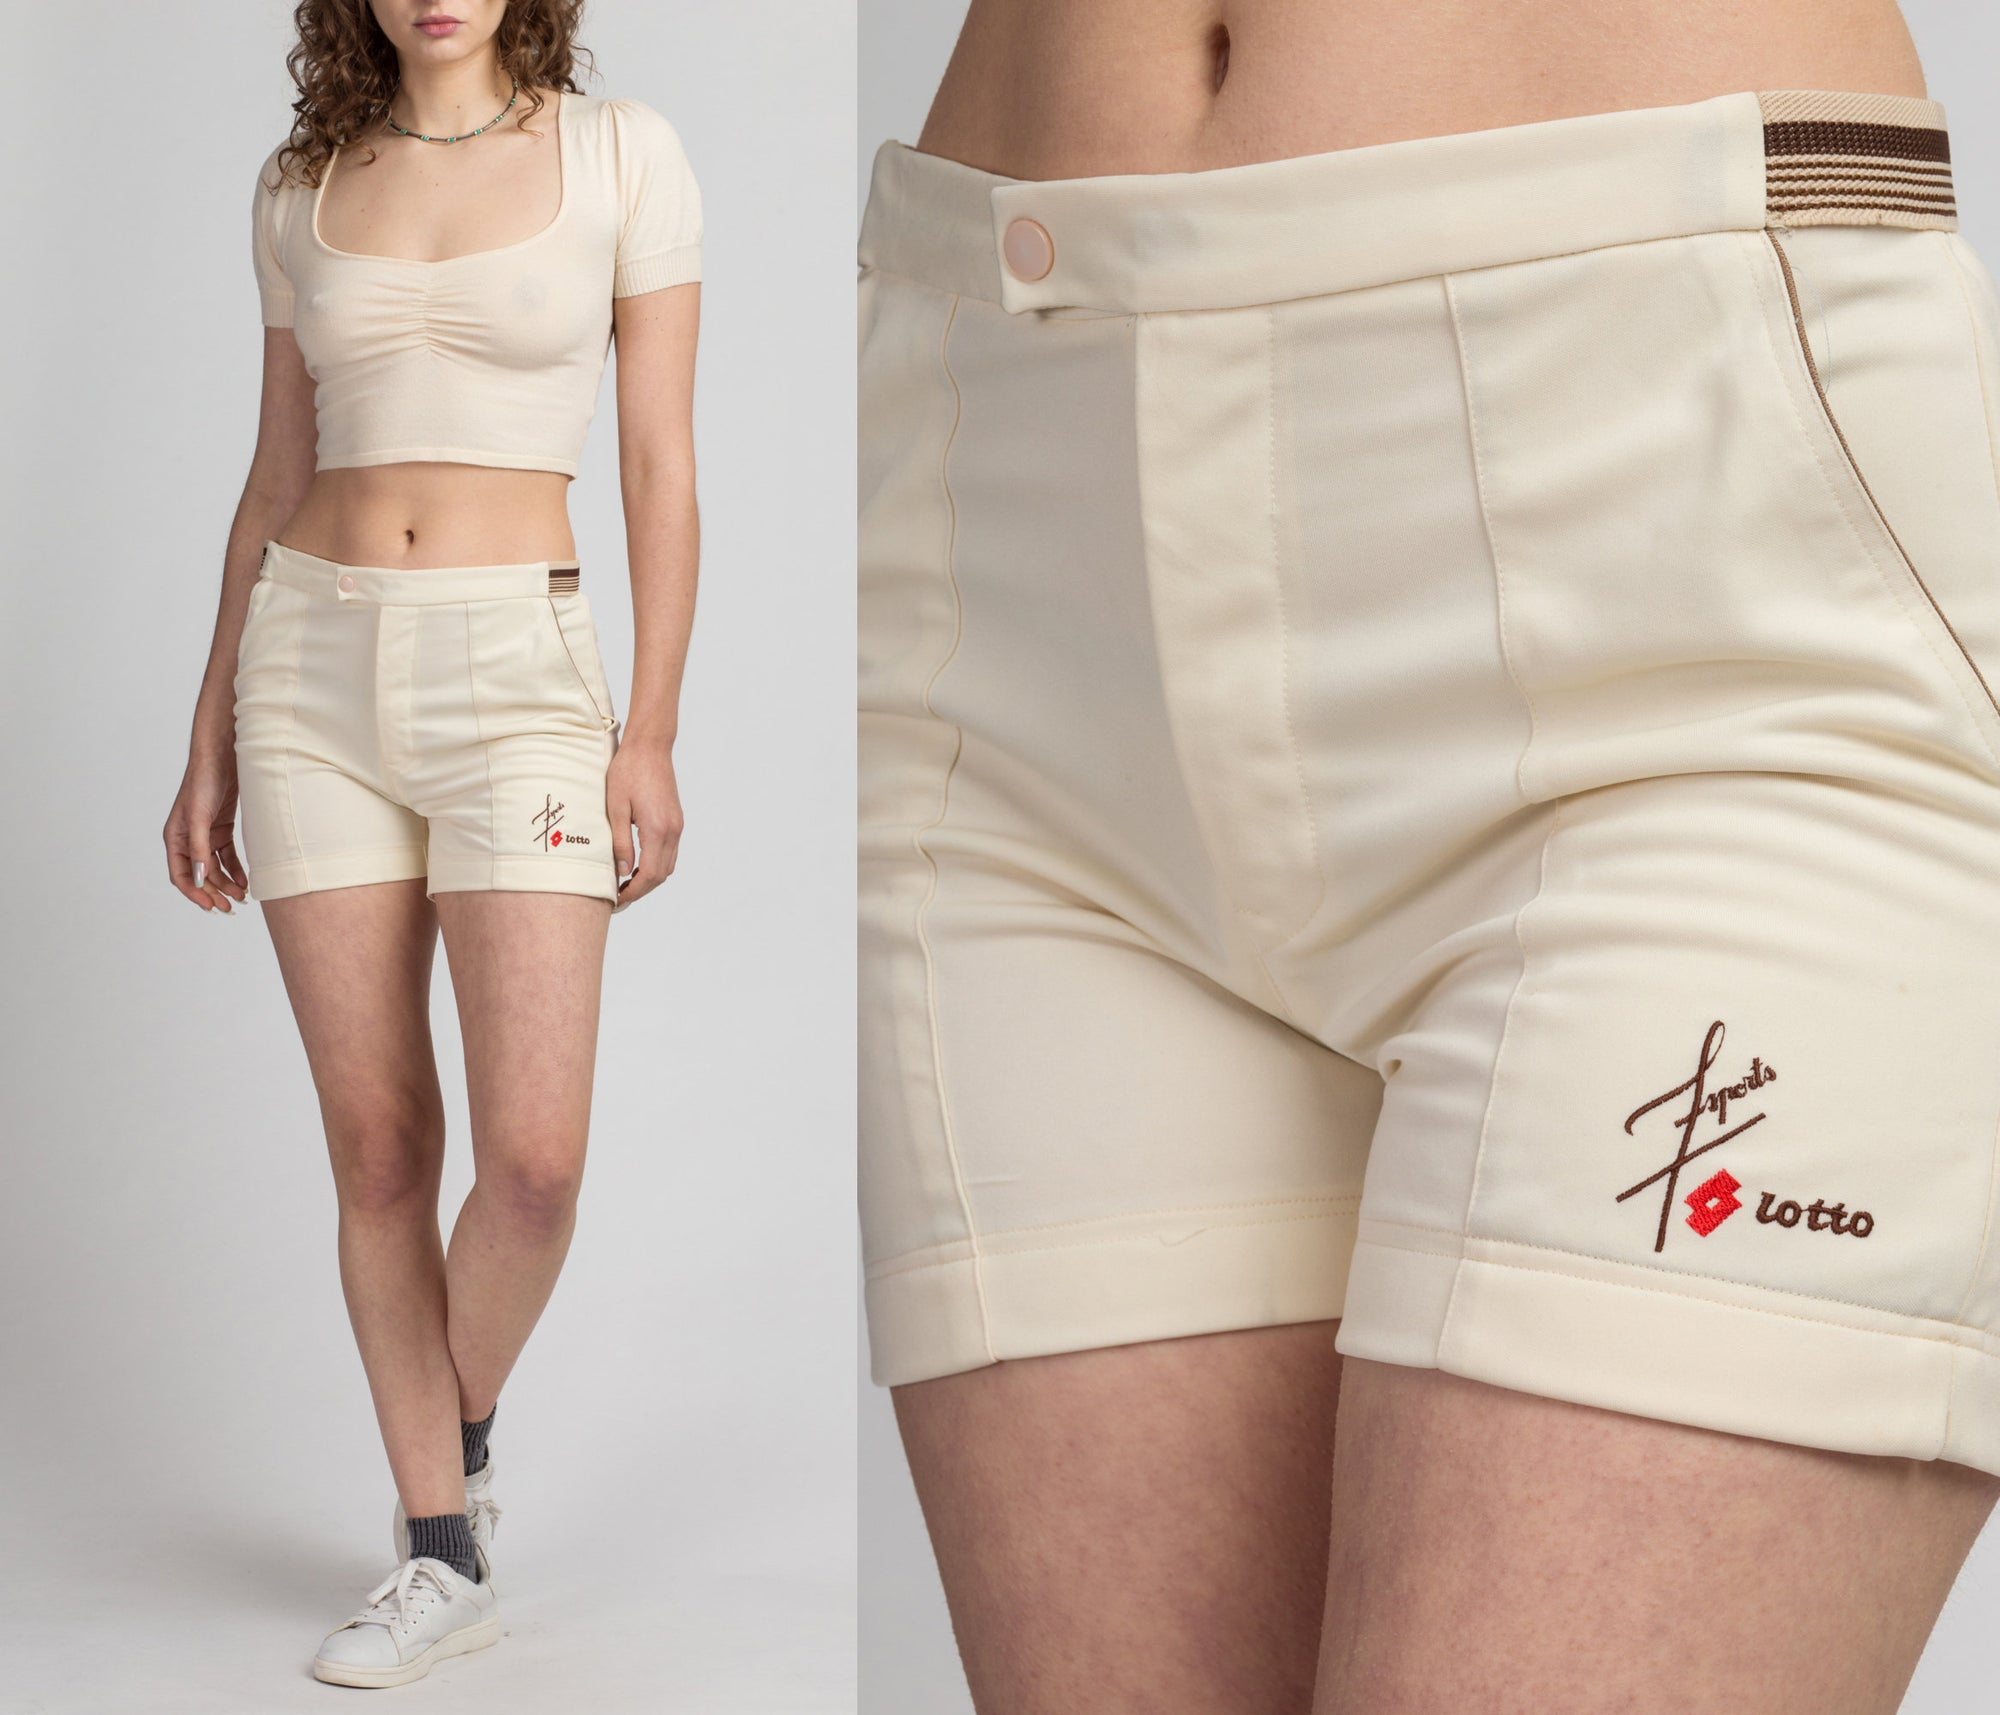 80s Striped Trim Athletic Shorts - Men's Small, Women's Medium | Vintage Cream High Waist Logo Tennis Shorts